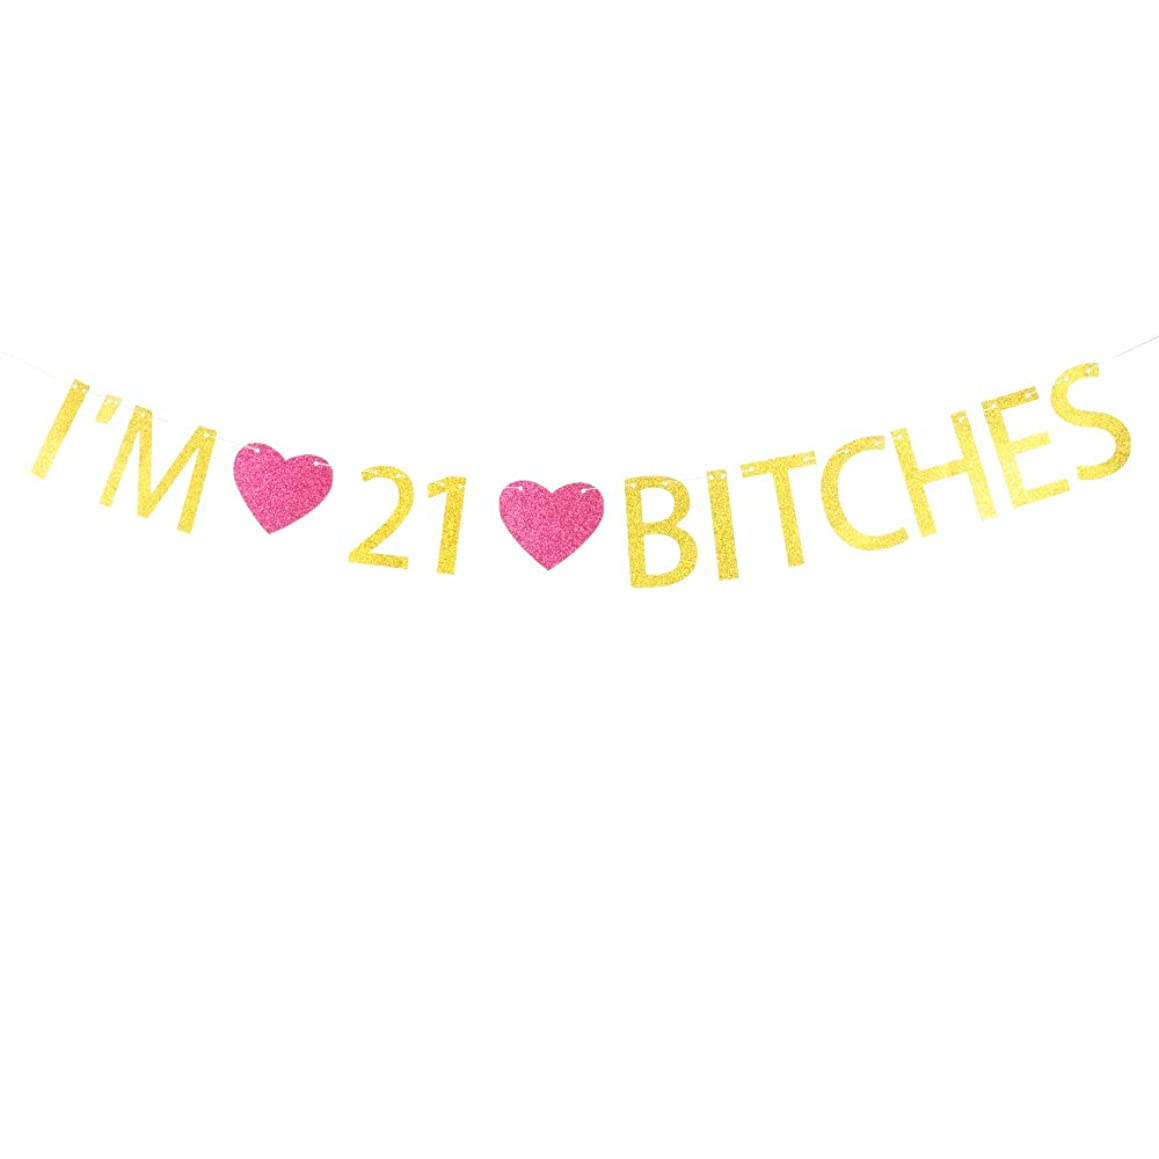 I'm 21 Bitches Banner Gold Glitter Letters with Rose Madder Heart Sign for 21st Birthday Party Decorations Gold Banner Pertlife